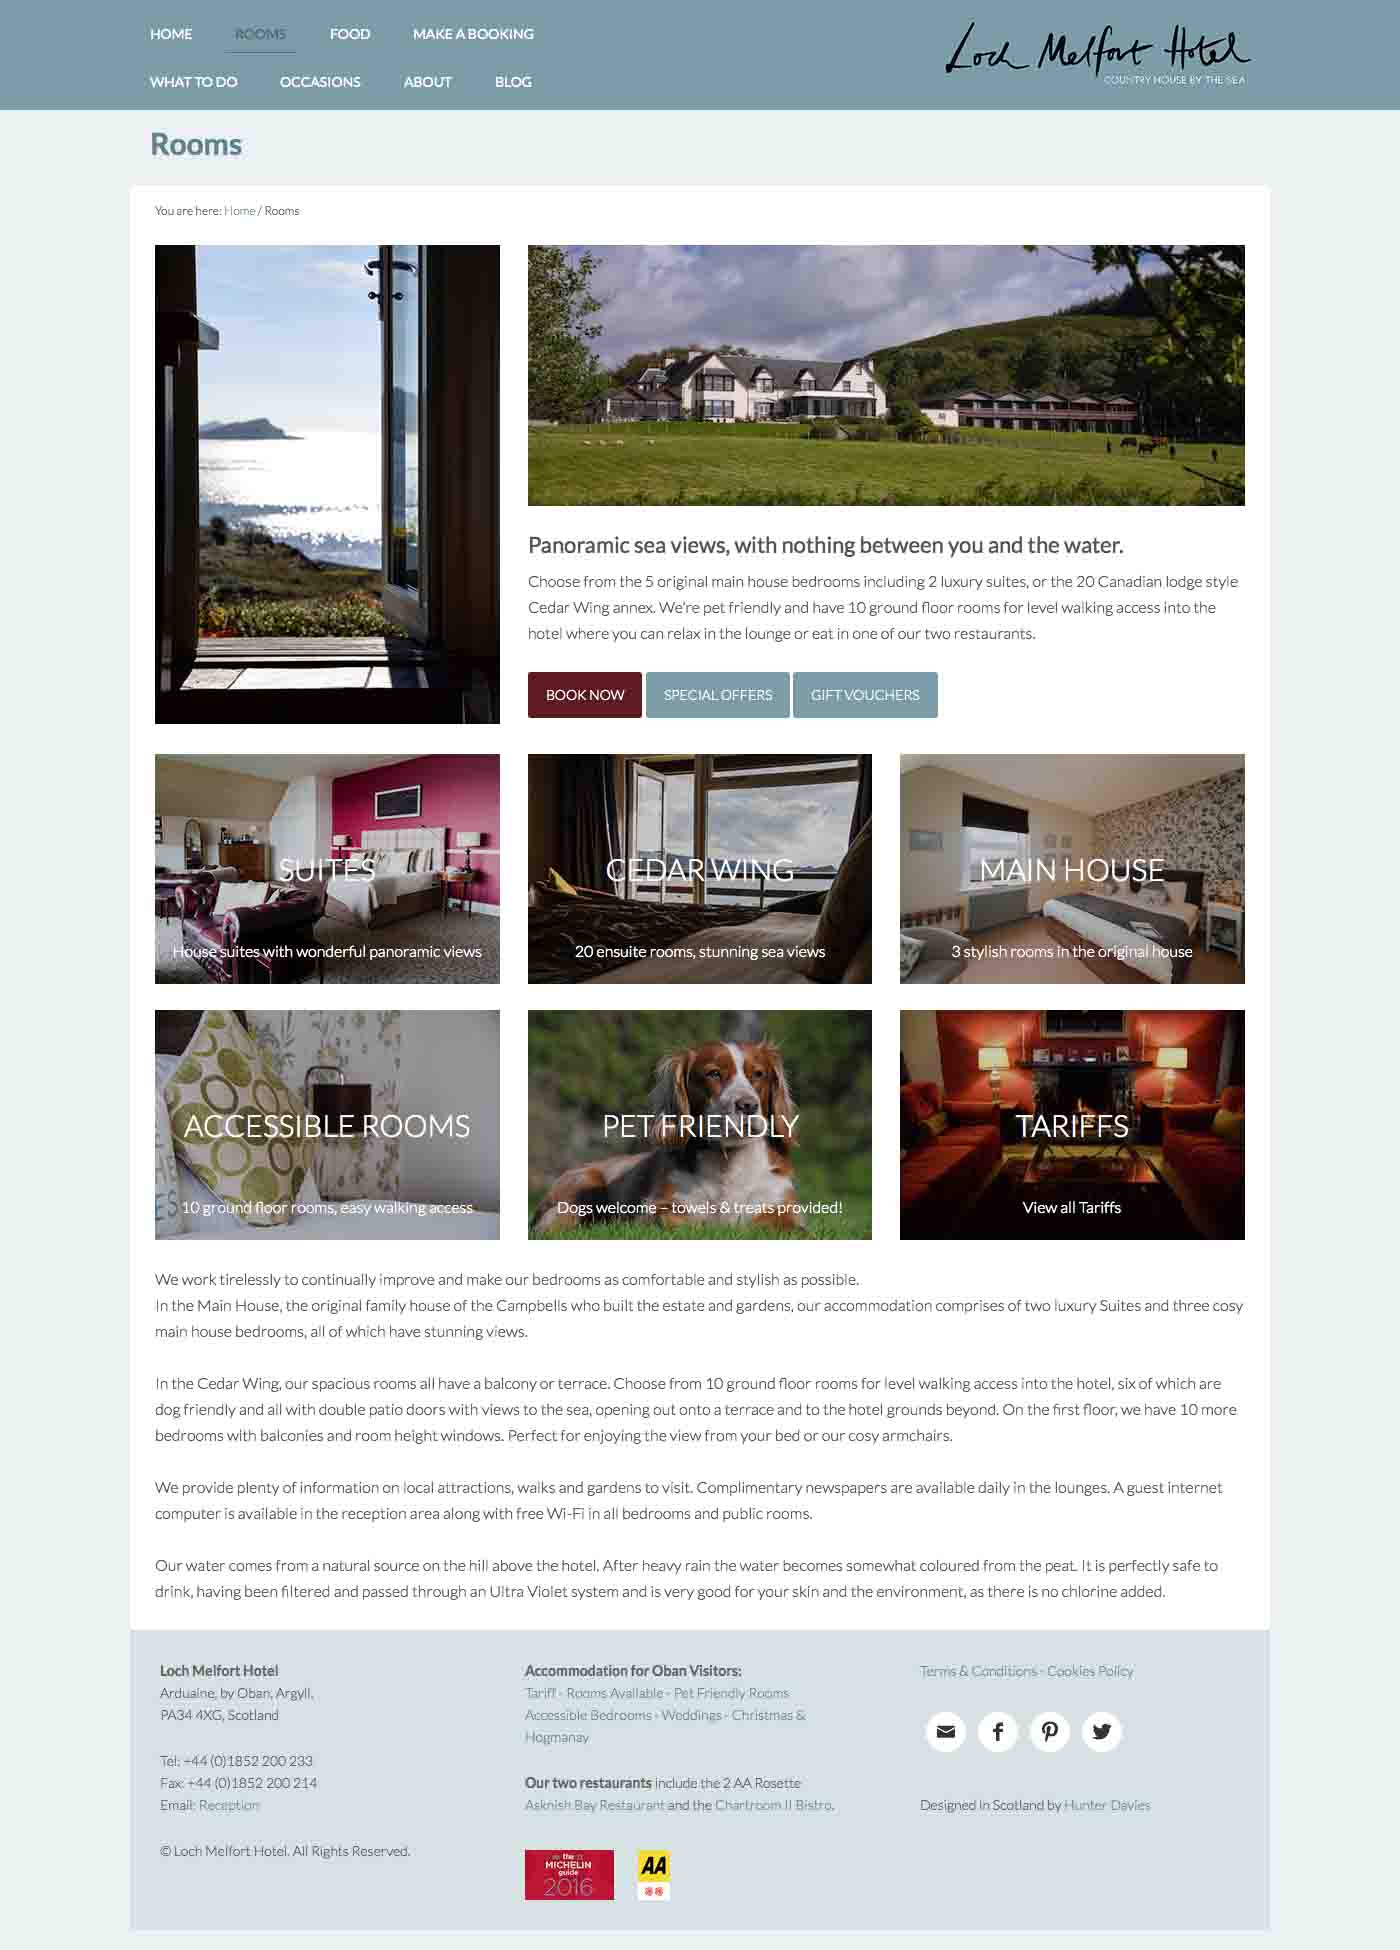 Rooms - Loch Melfort Hotel